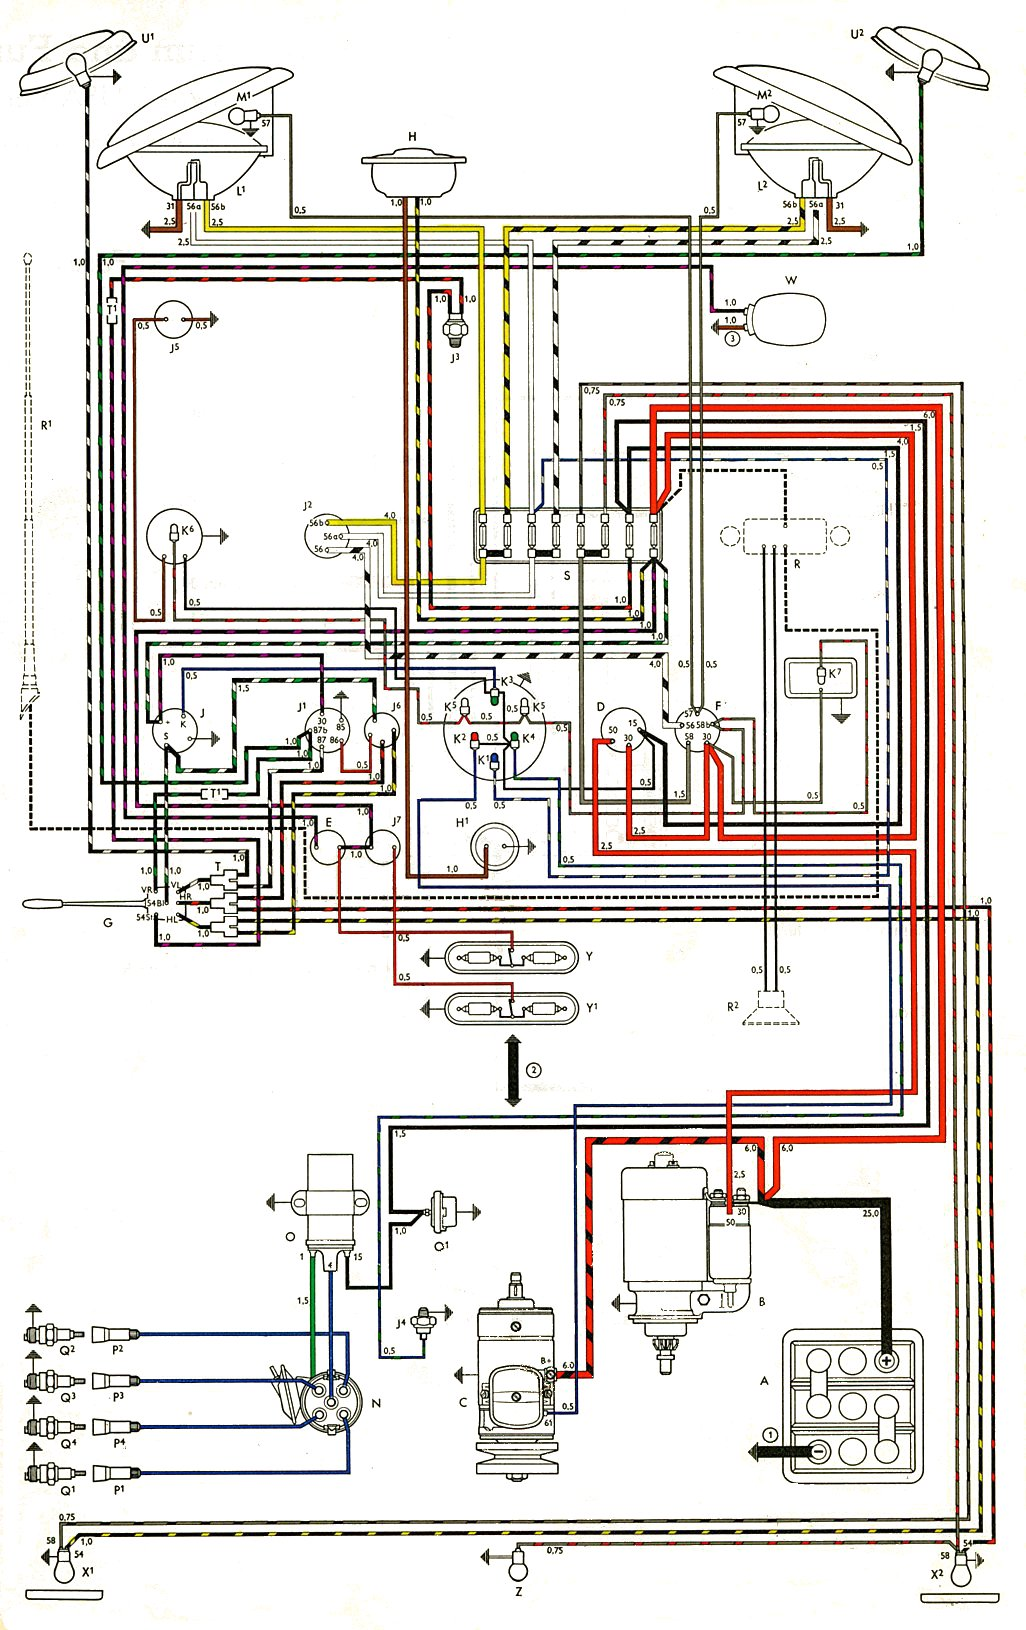 thesamba com type 2 wiring diagrams rh thesamba com  1979 vw rabbit wiring diagram